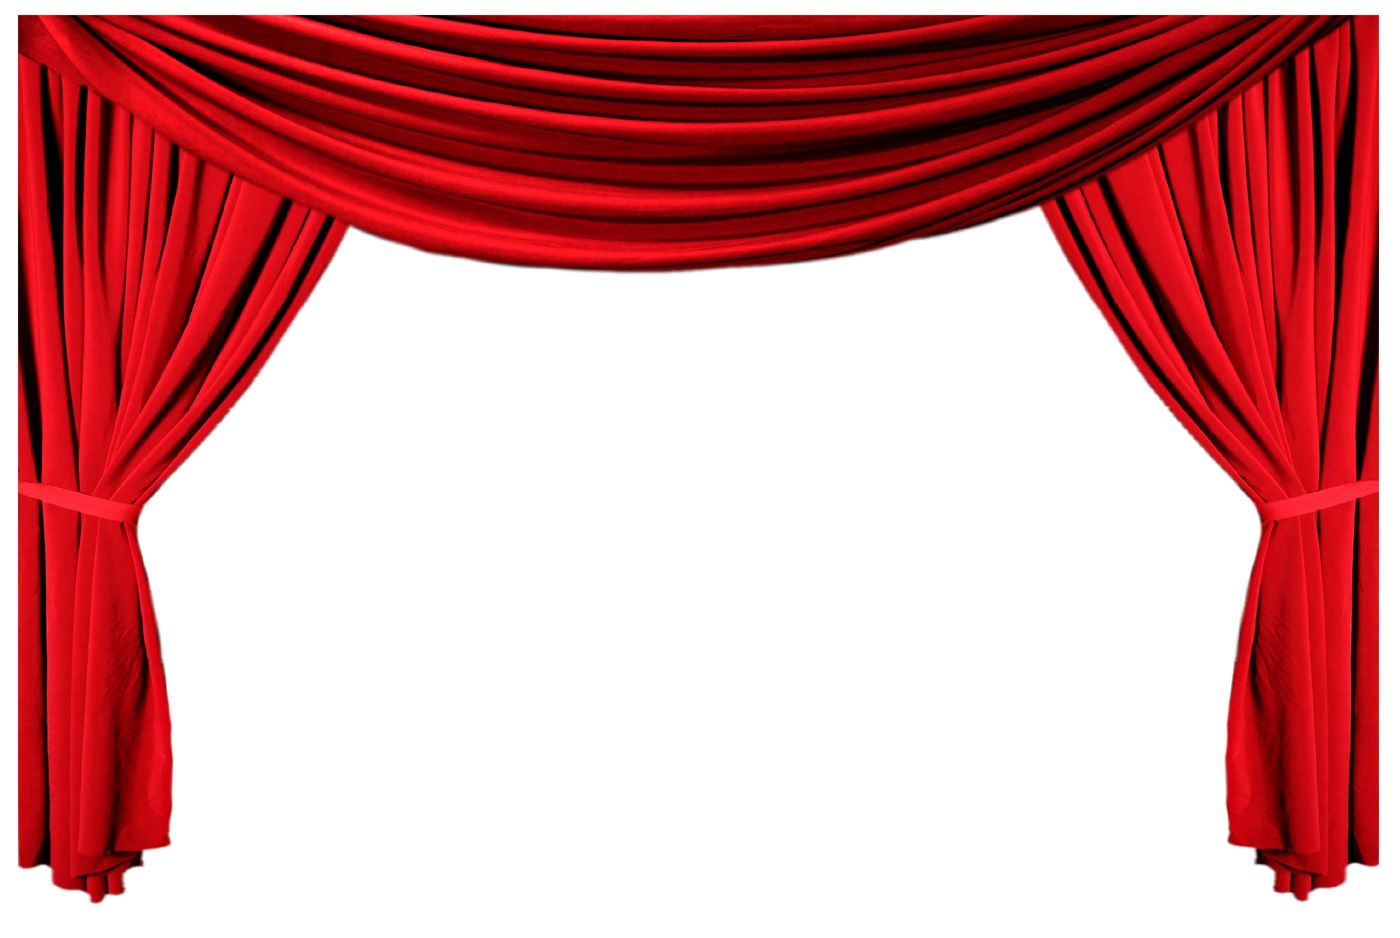 Freegreatpicture Com 10962 Red Curtain Curtain Jpg 1400 938